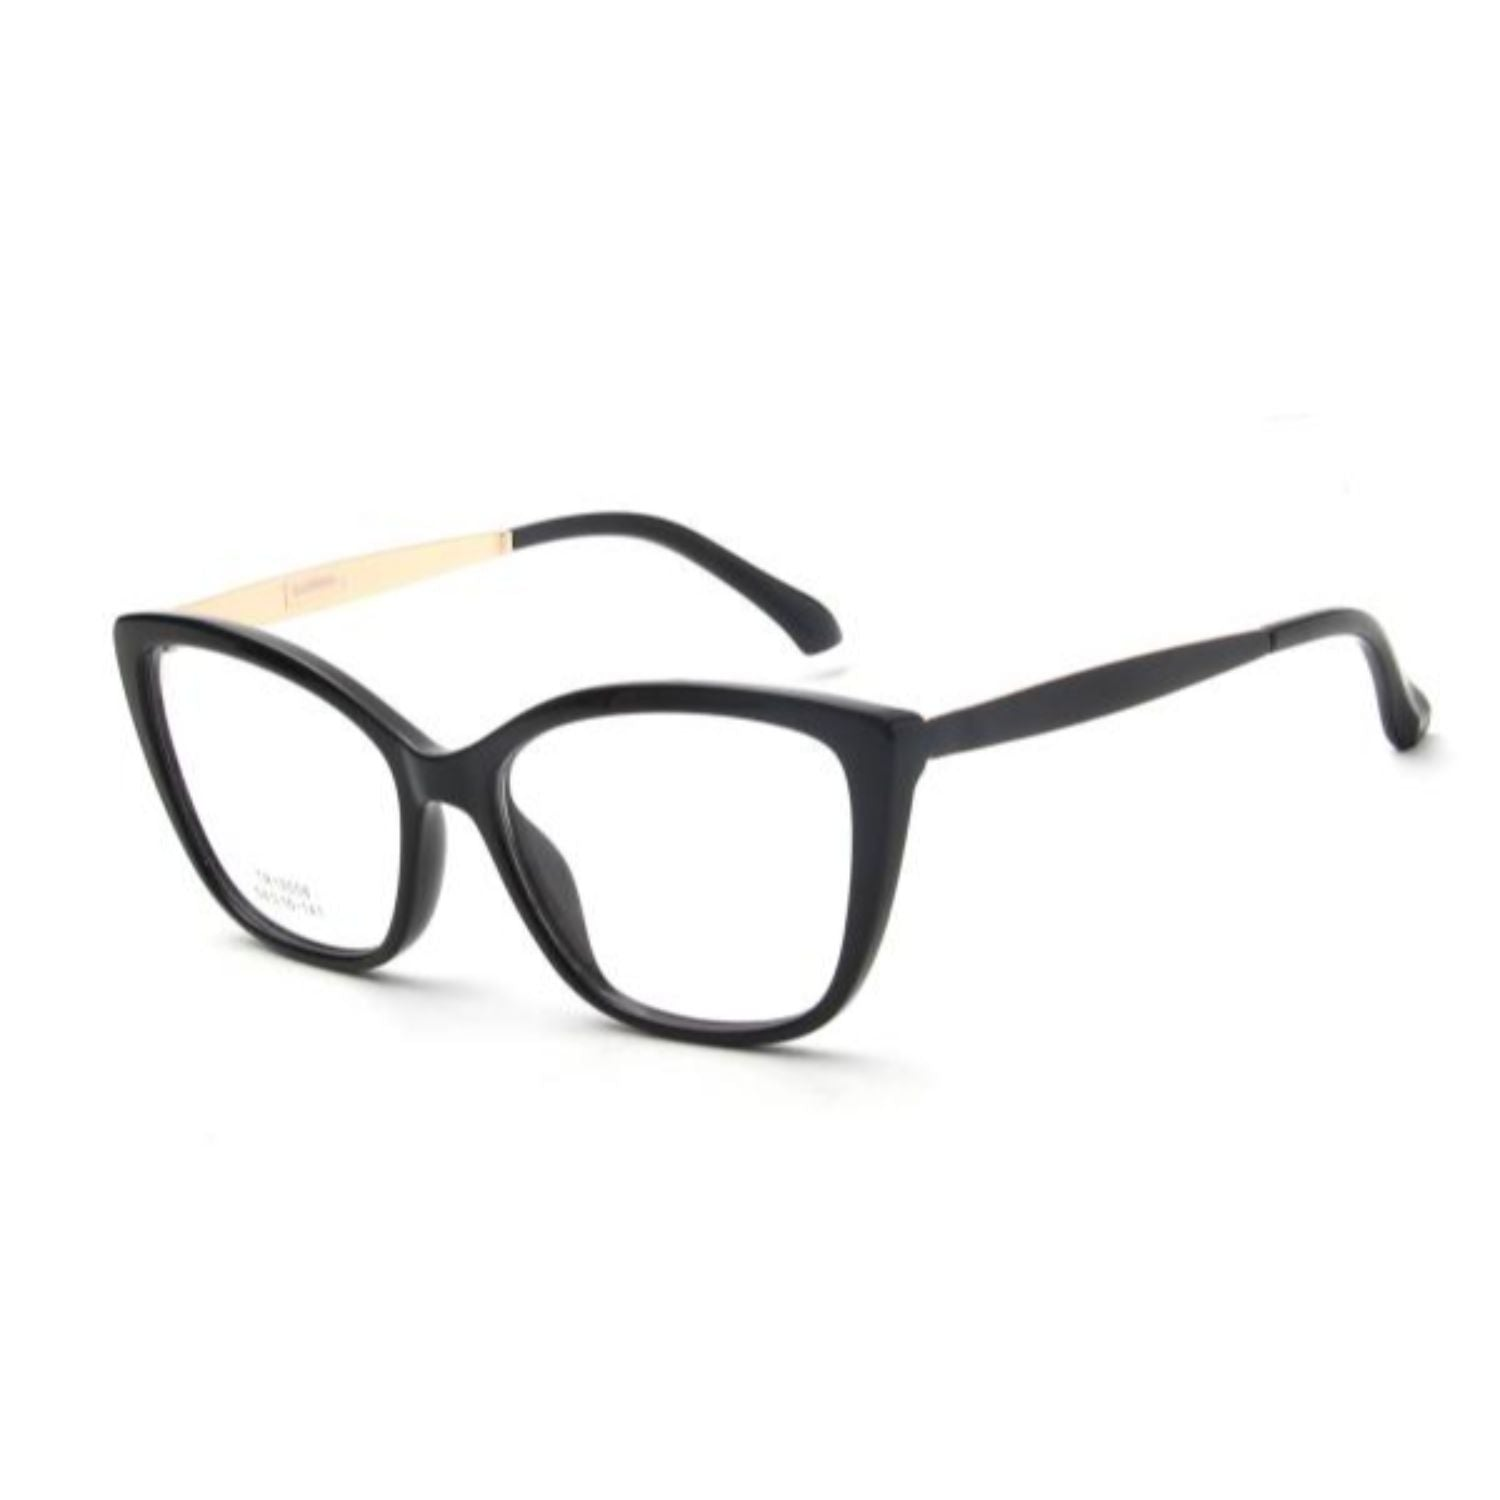 OTR18 - Women Fashion Cat Eye Optical Glasses - Iris Fashion Inc. | Wholesale Sunglasses and Glasses